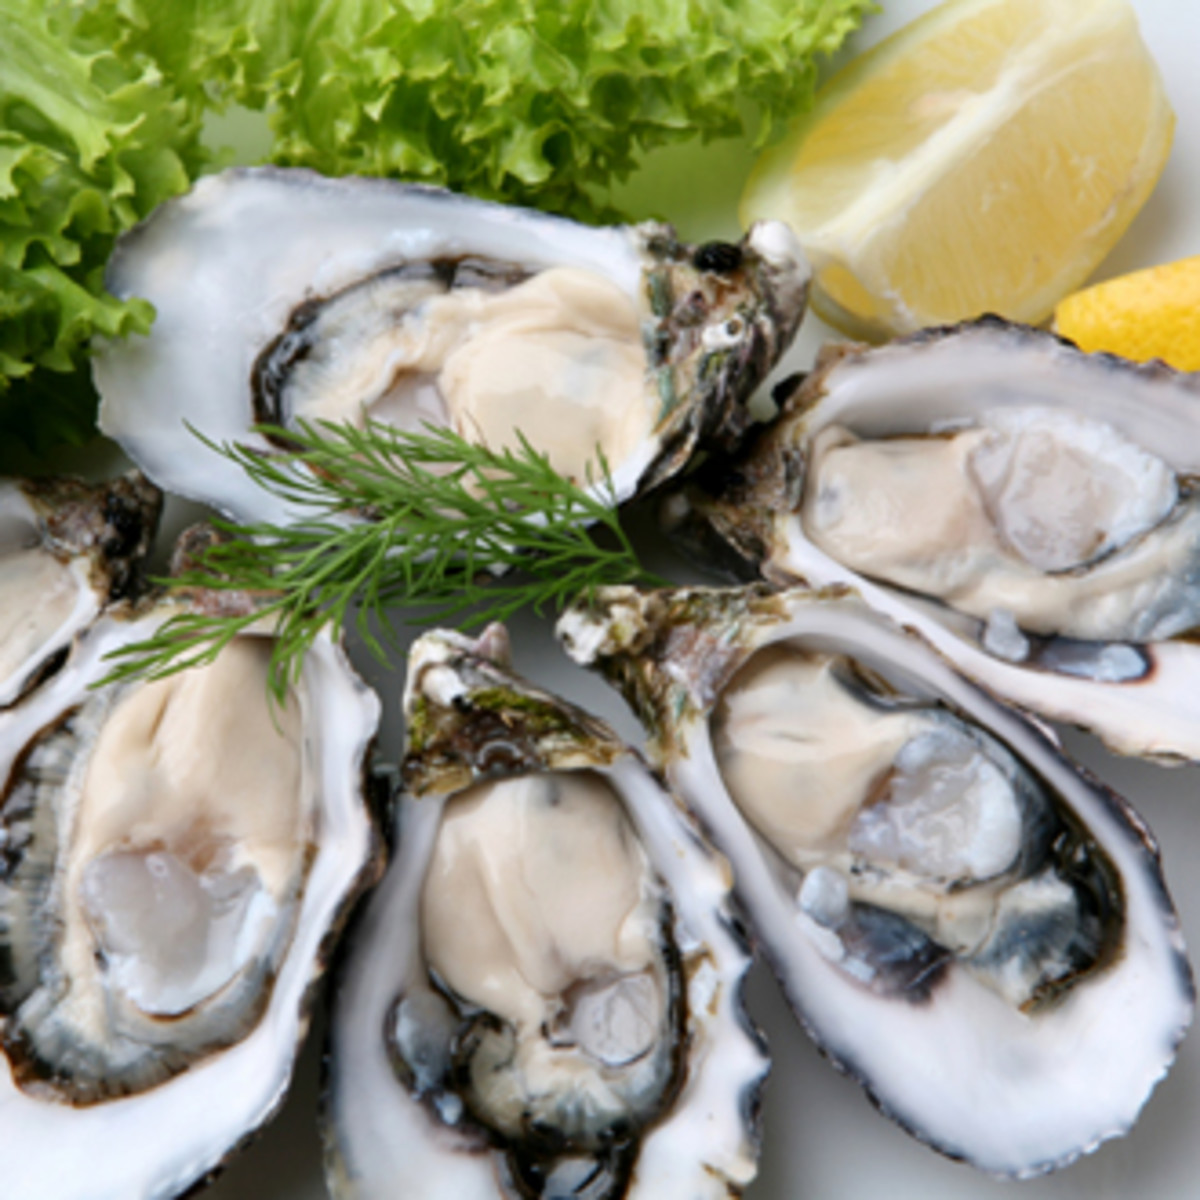 causes-and-symptoms-of-a-shellfish-allergy